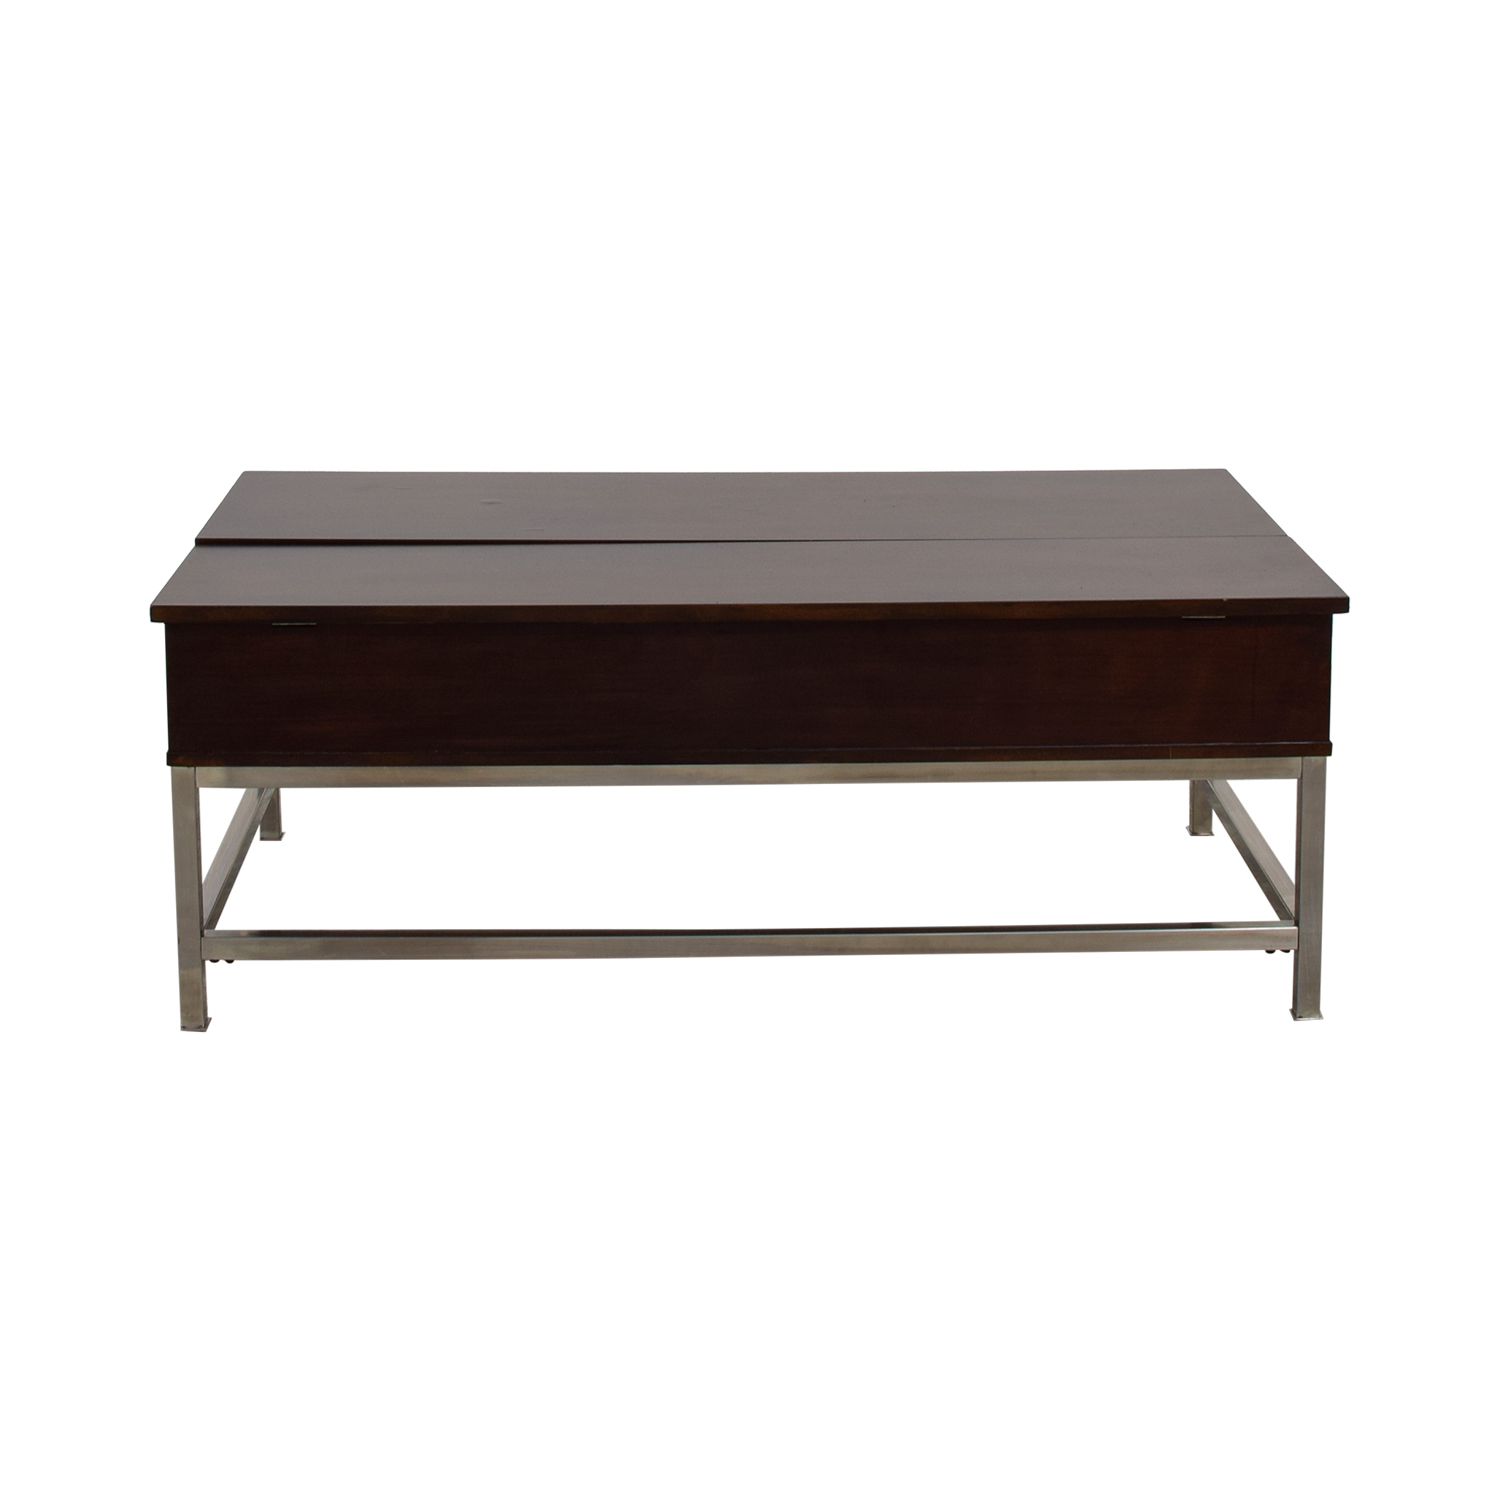 Raymour & Flanigan Raymour & Flanigan Lift Top Coffee Table Tables